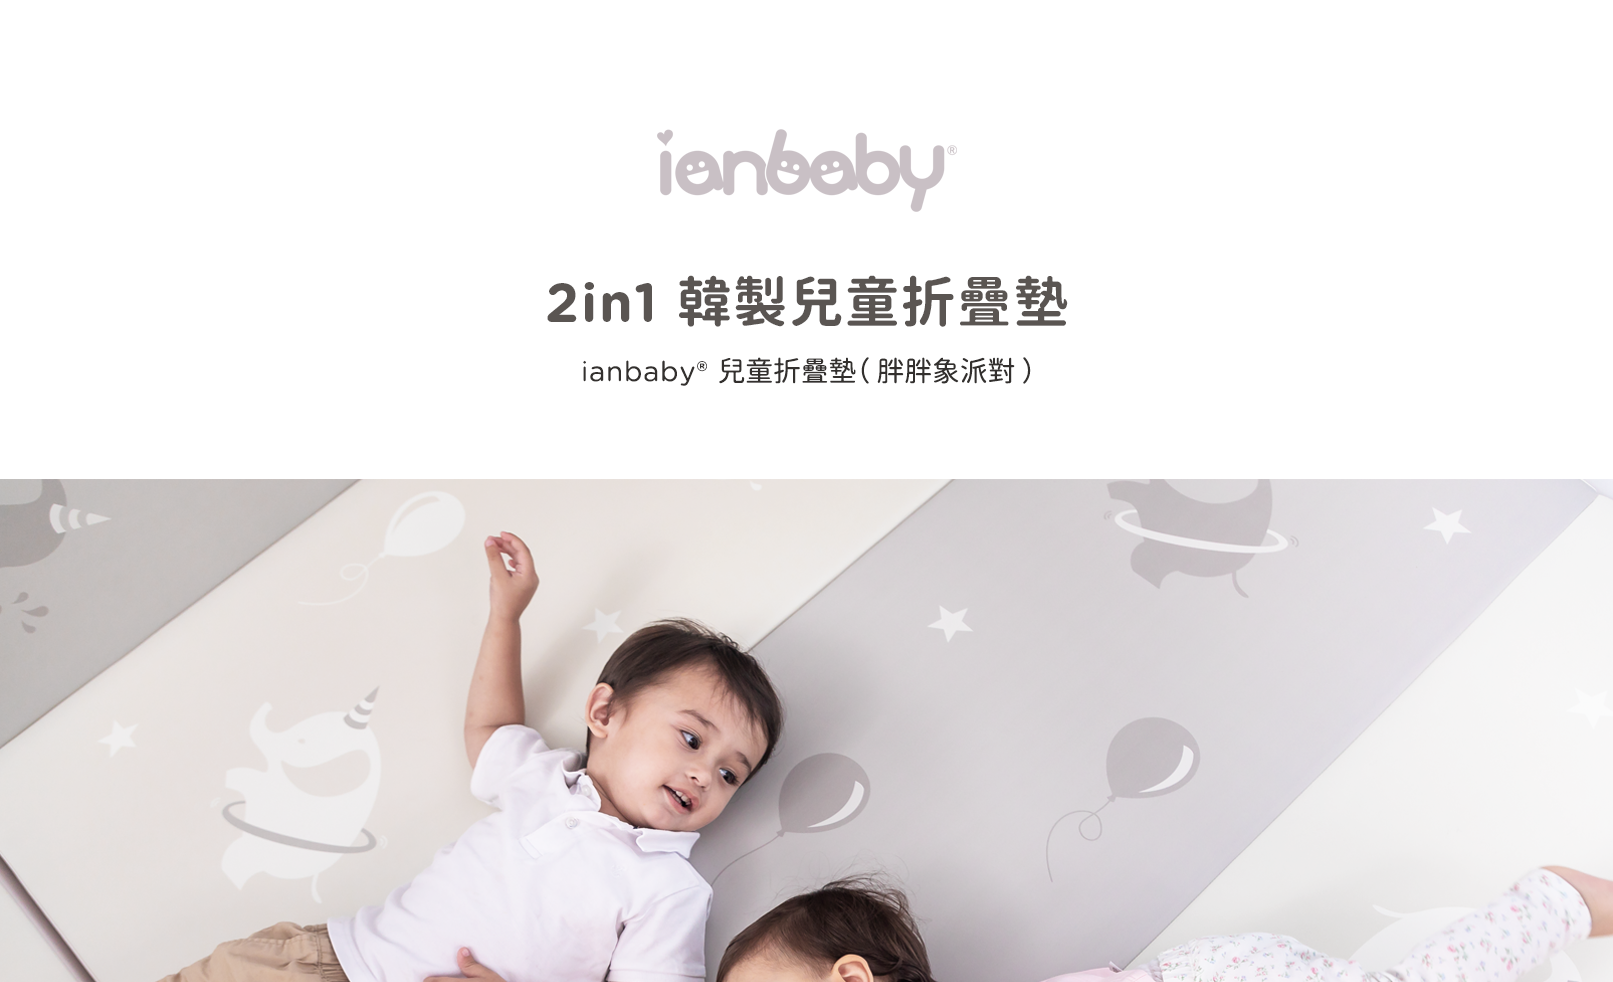 ianbaby_i05_01.png